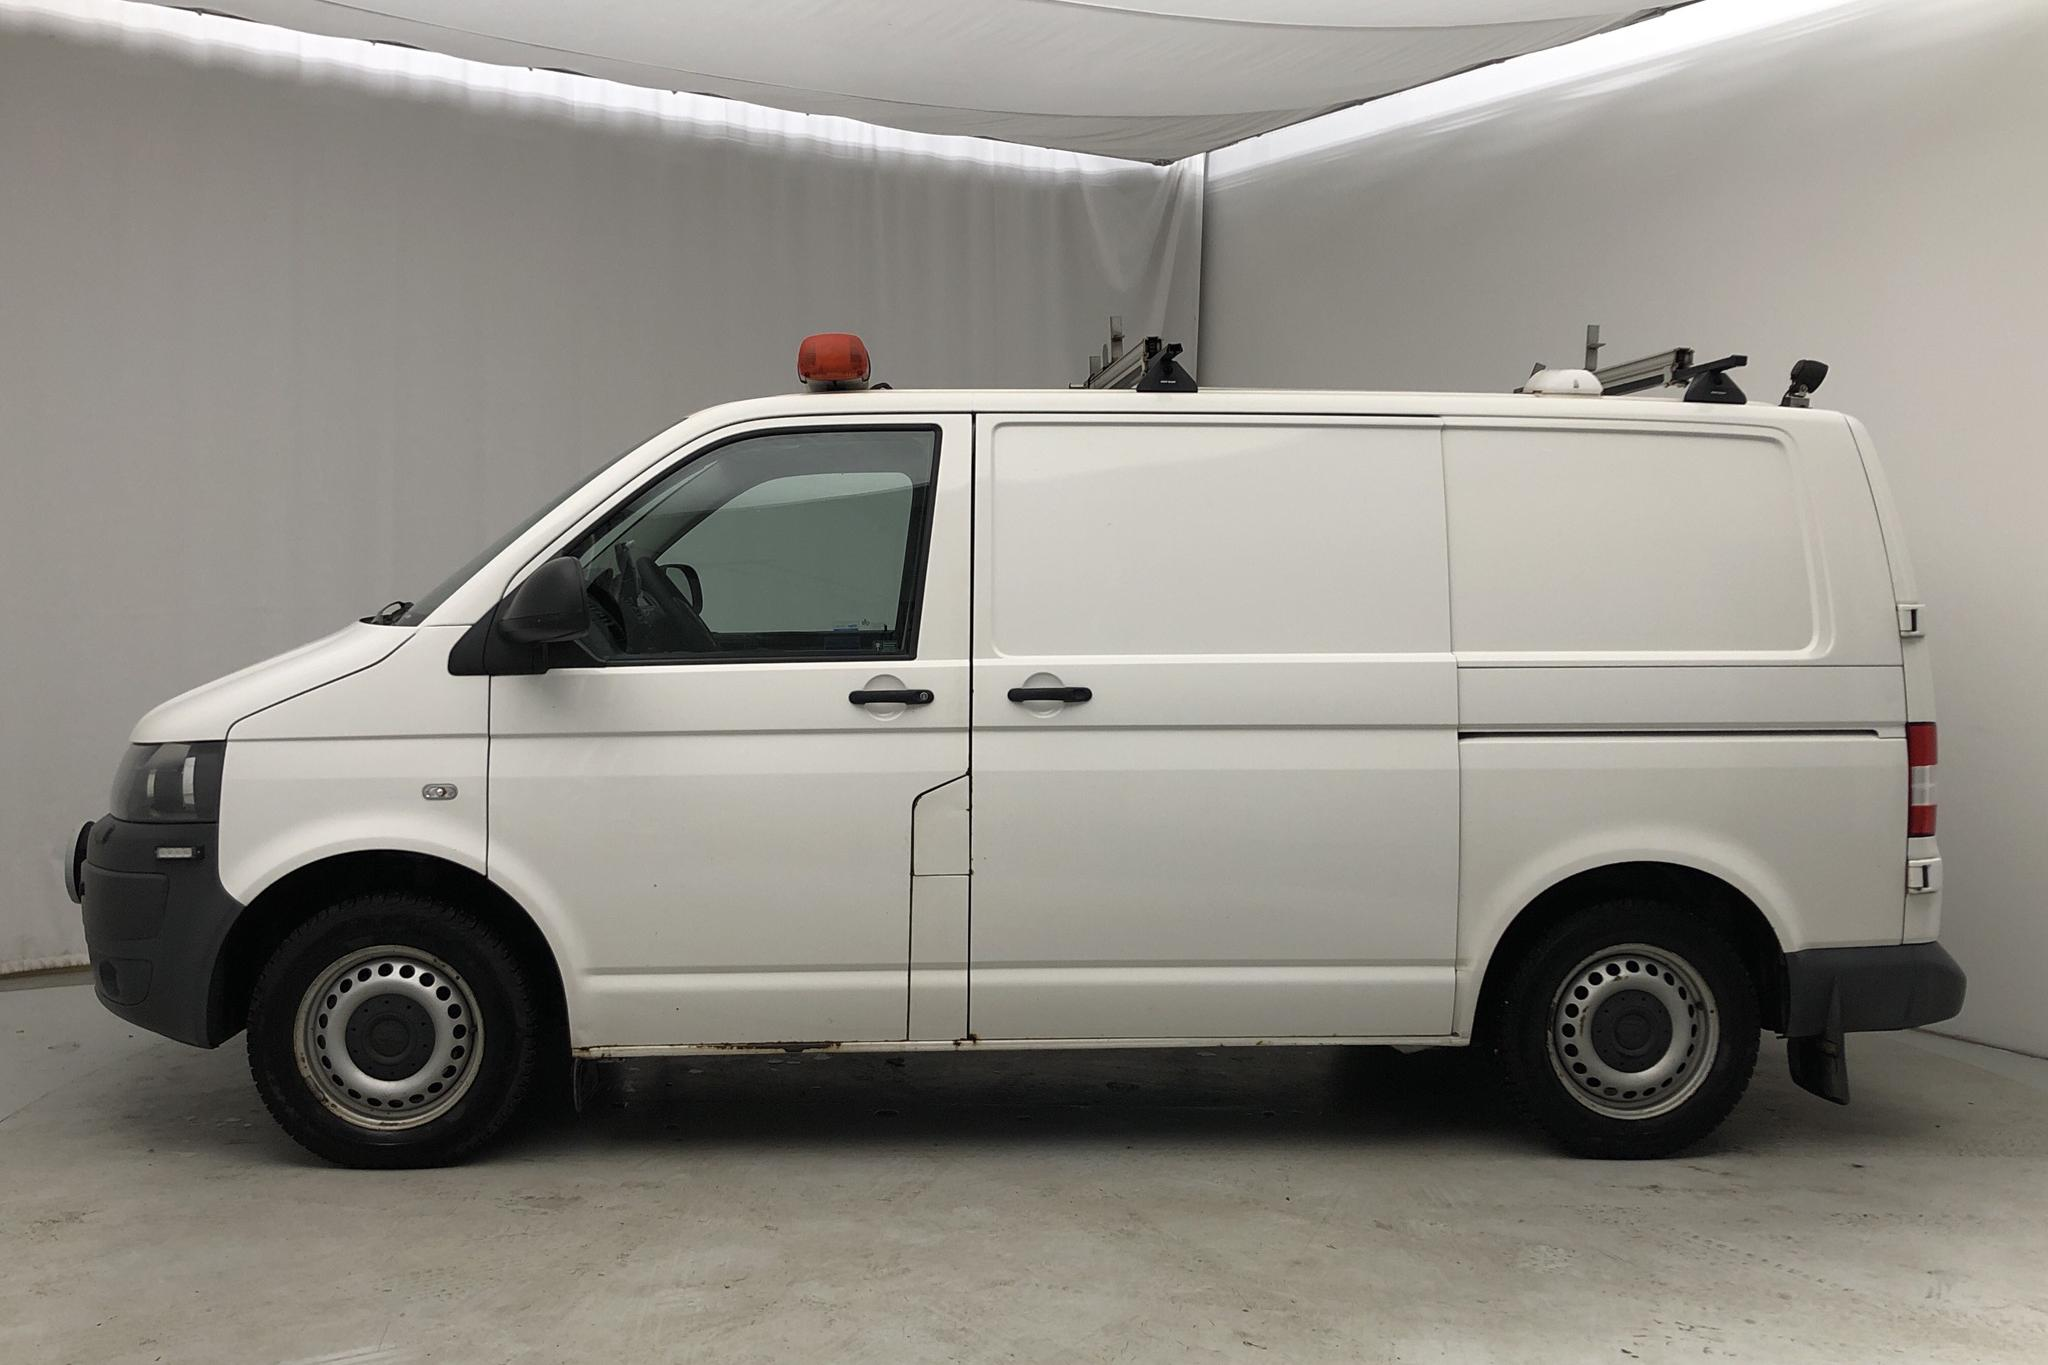 VW Transporter T5 2.0 TDI (140hk) - 143 040 km - Automatic - white - 2012